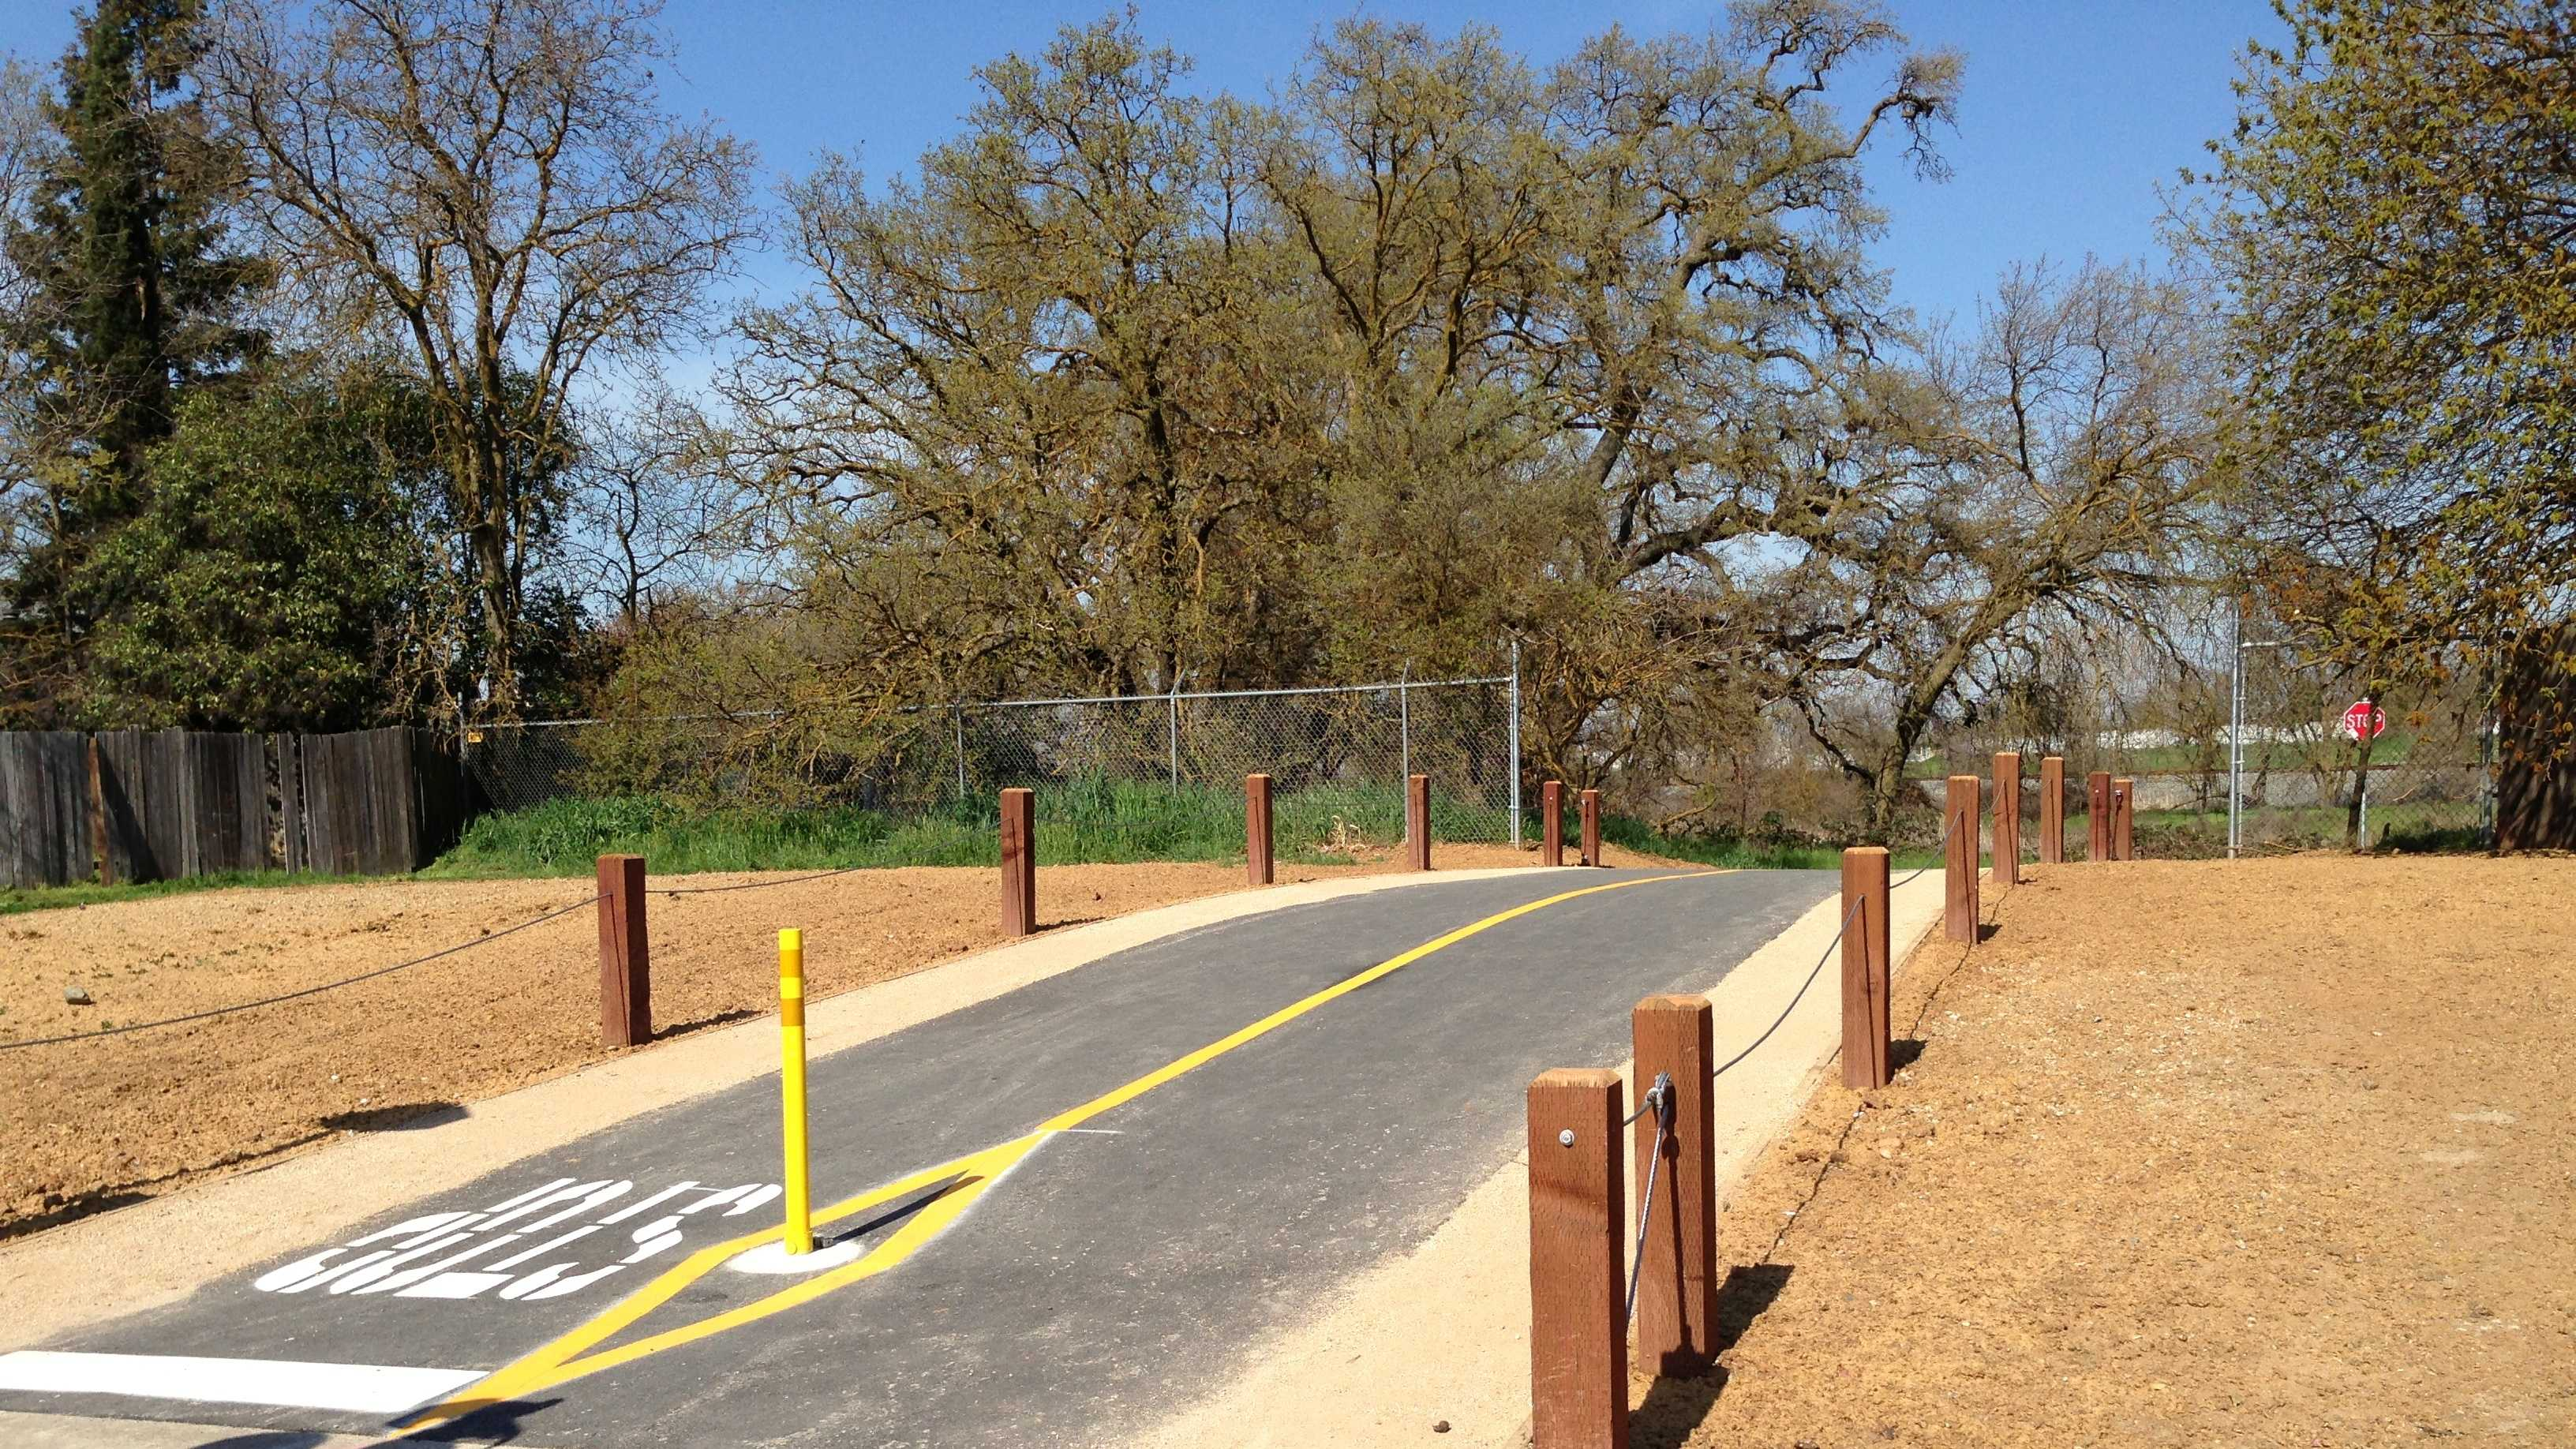 The new Camada Trail in Elk Grove is 100 feet long and cost $115,000 to build.